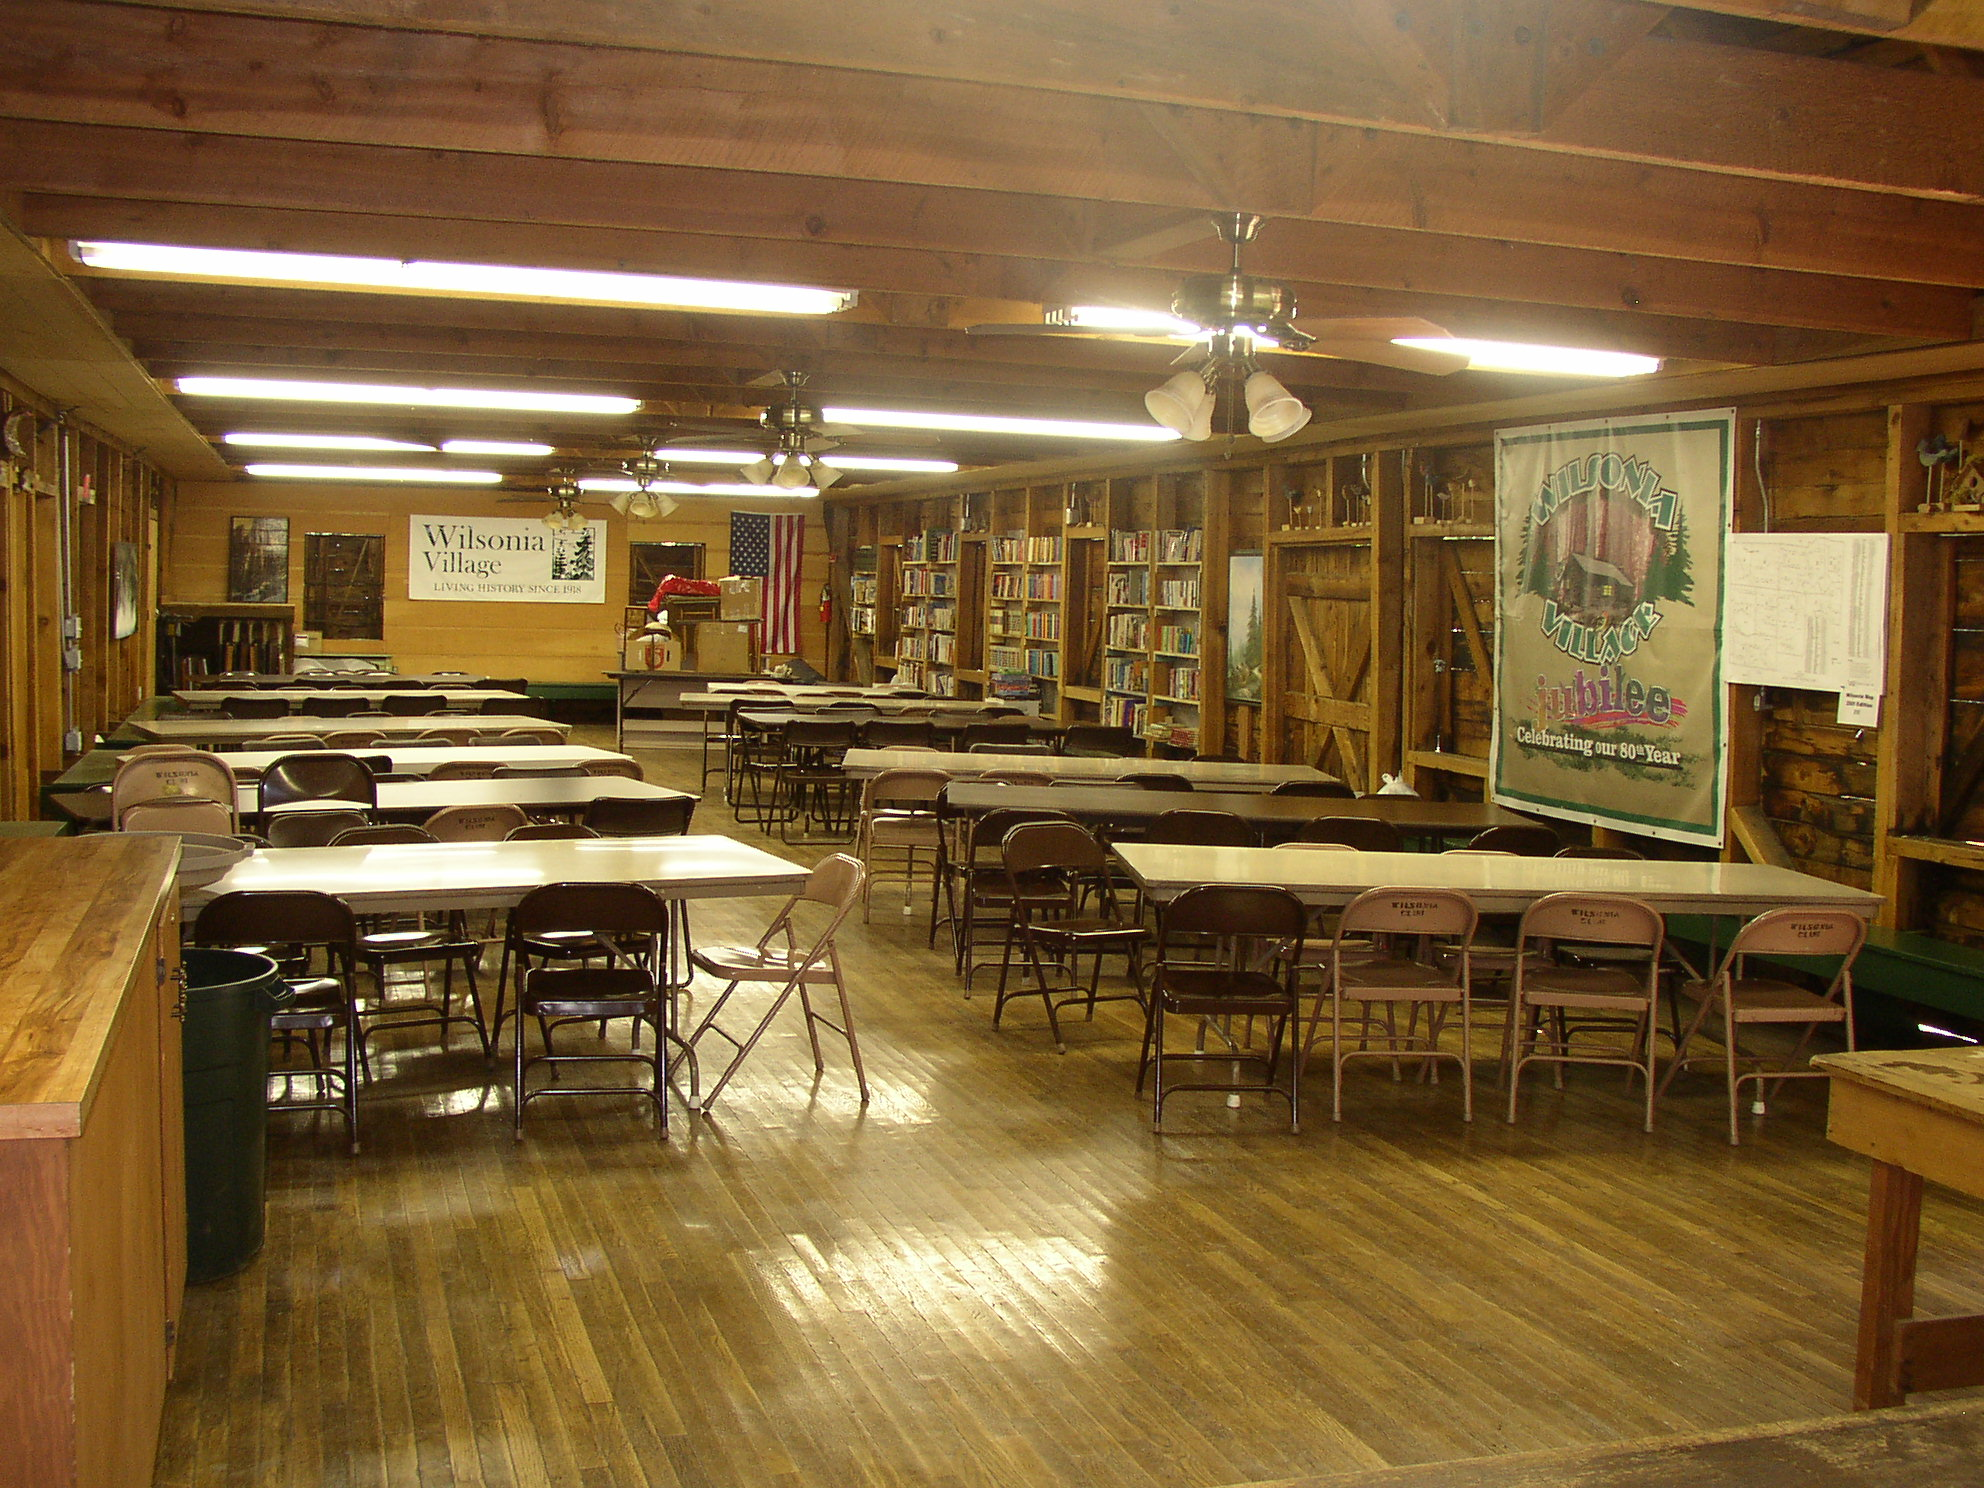 Inside the Clubhouse